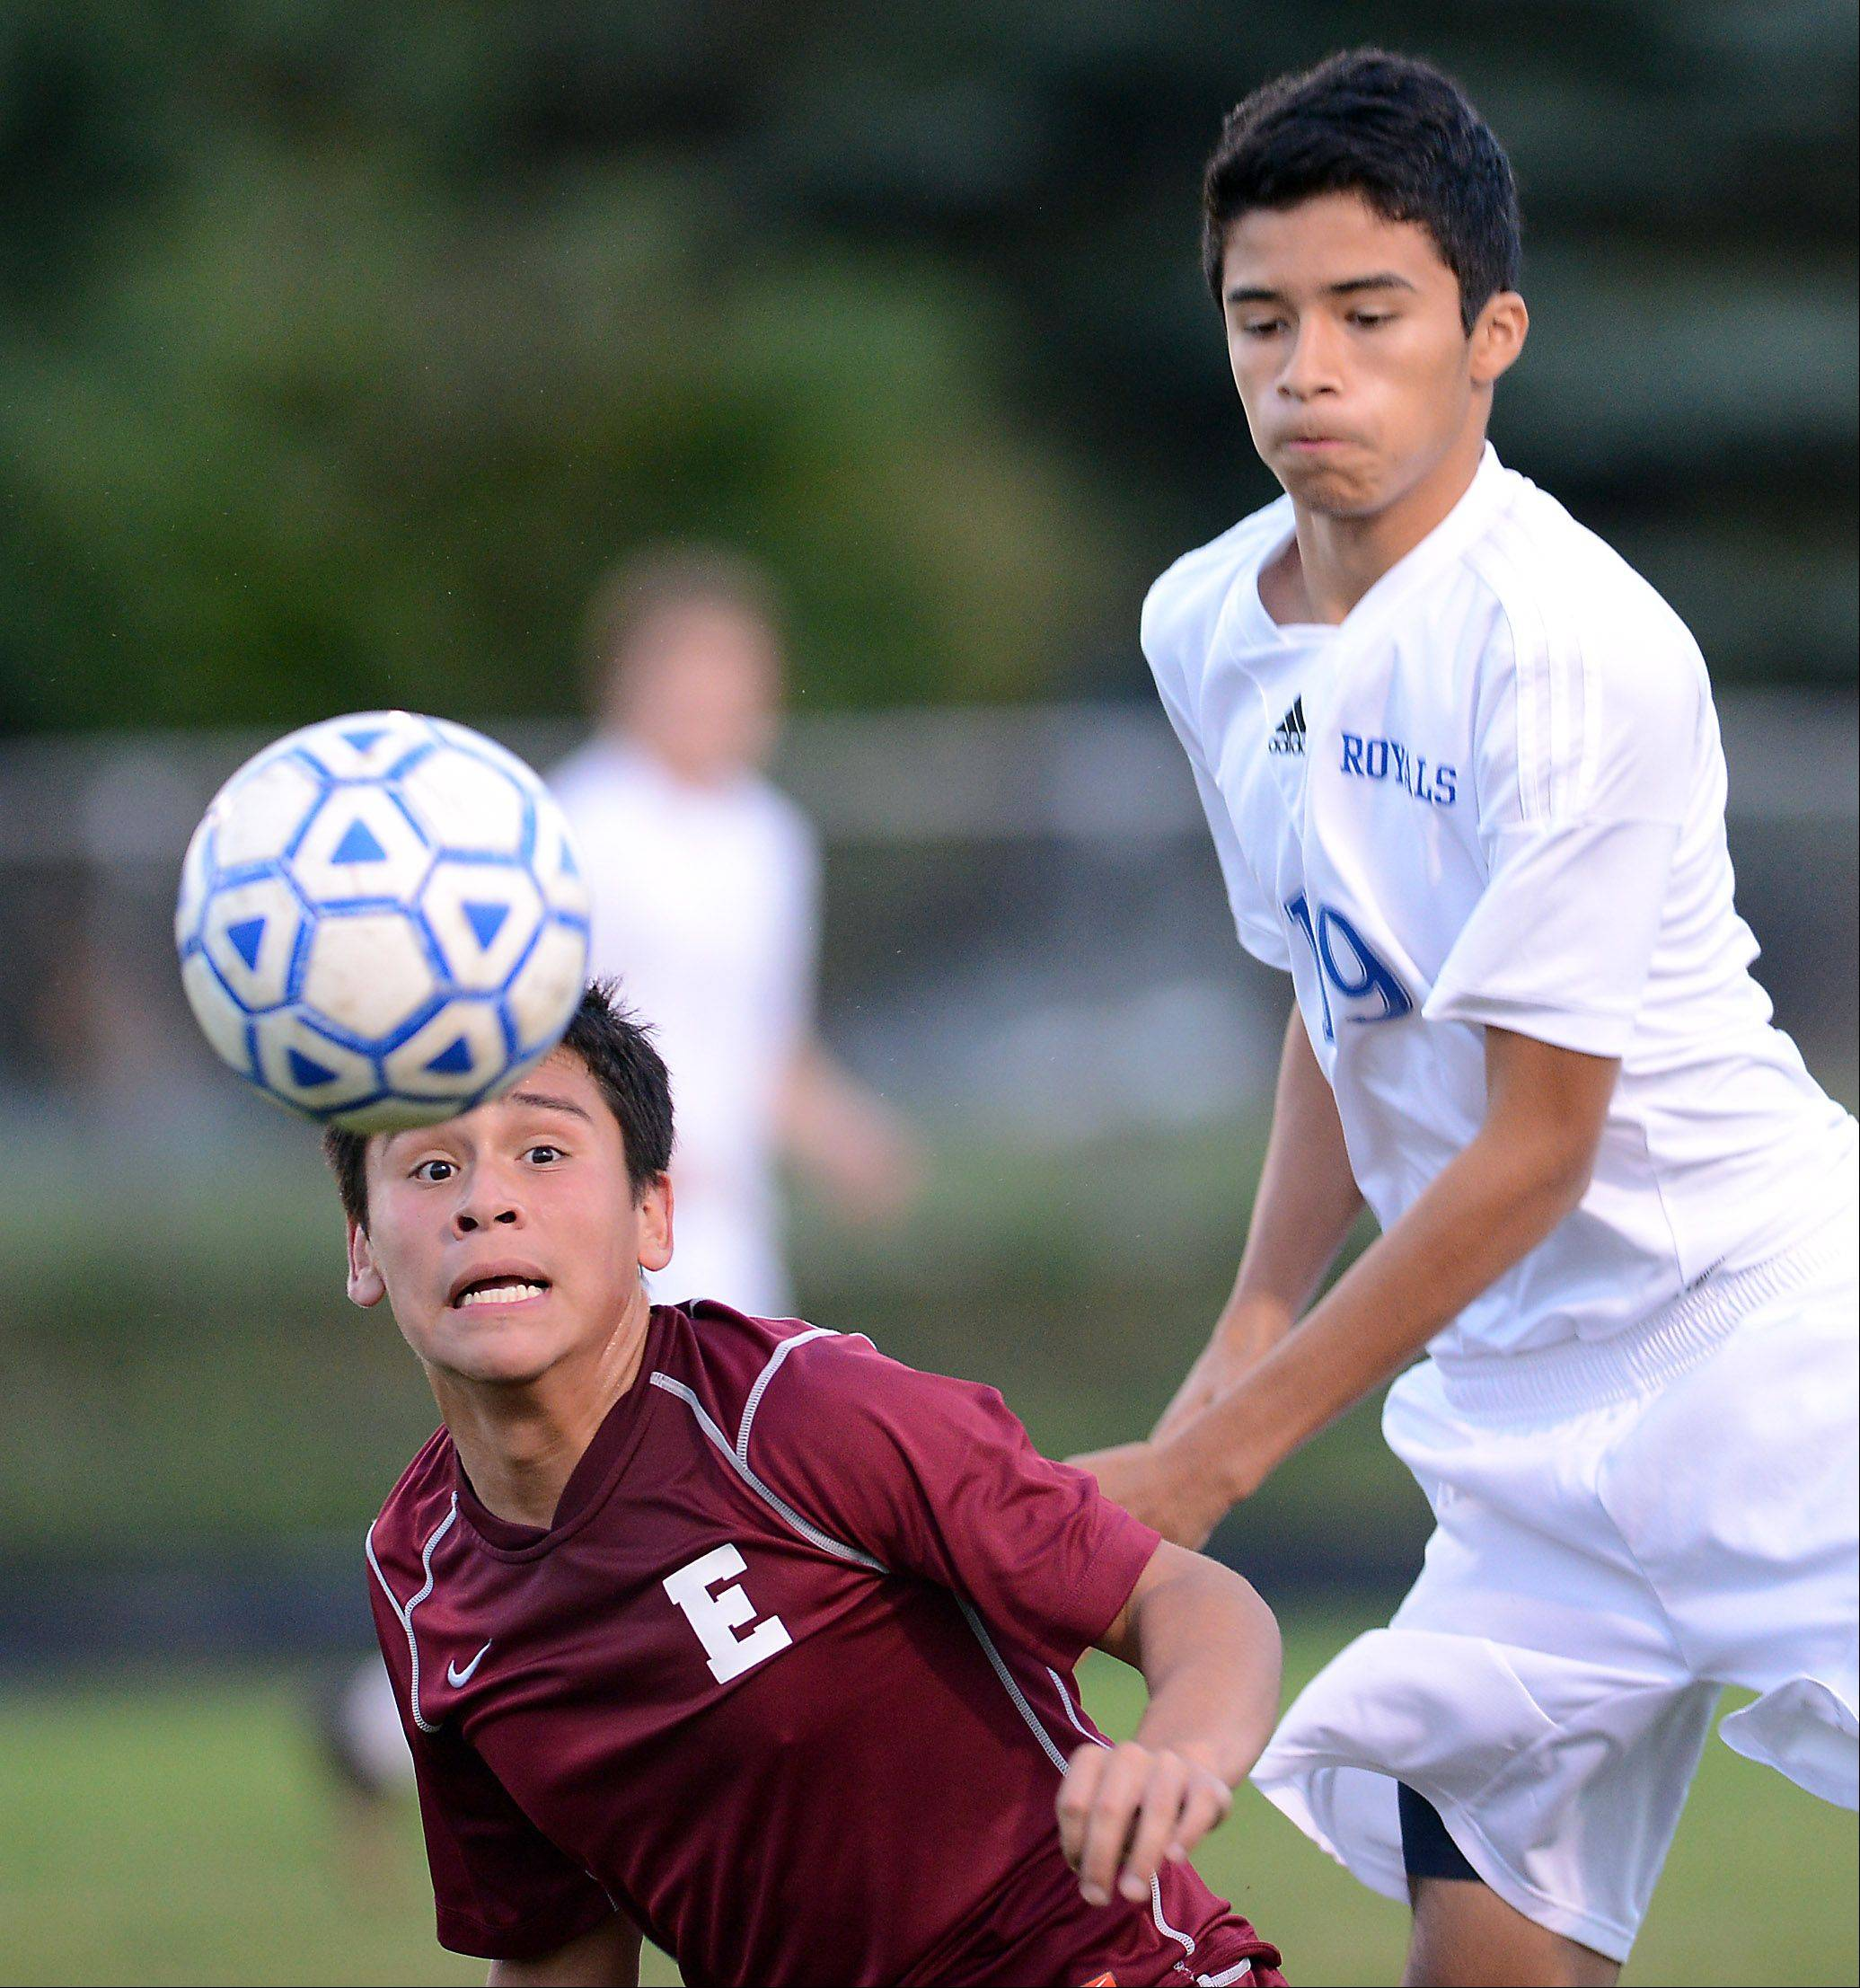 Elgin's Joel Chavez keeps his eyes on the ball with a Larkin defender coming over his back during Tuesday's game at Memorial Field in Elgin.